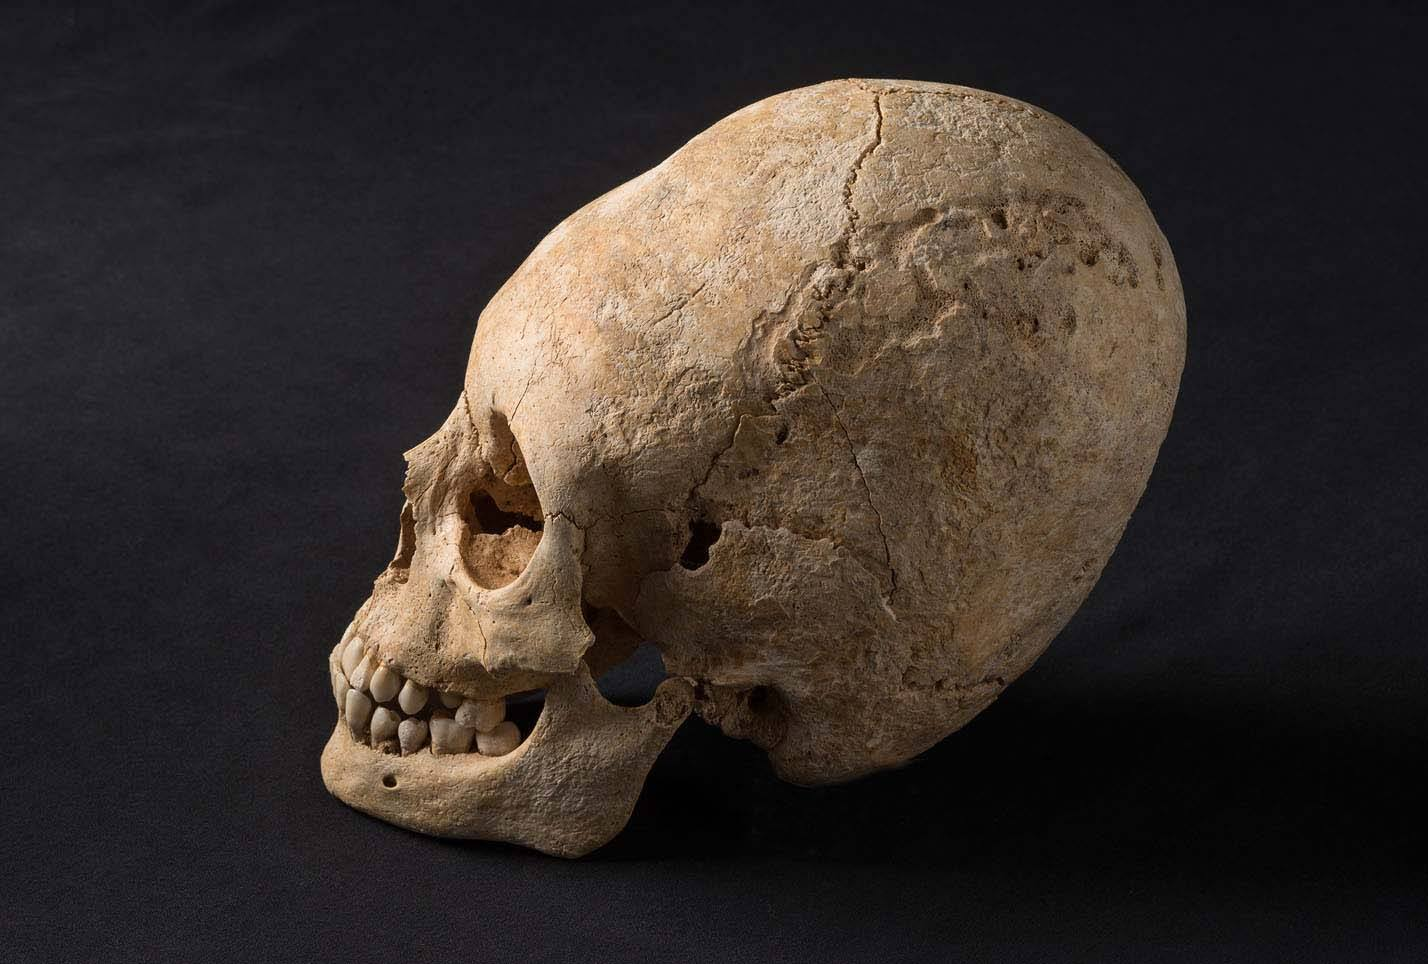 Alsace Hun Deformed Skull